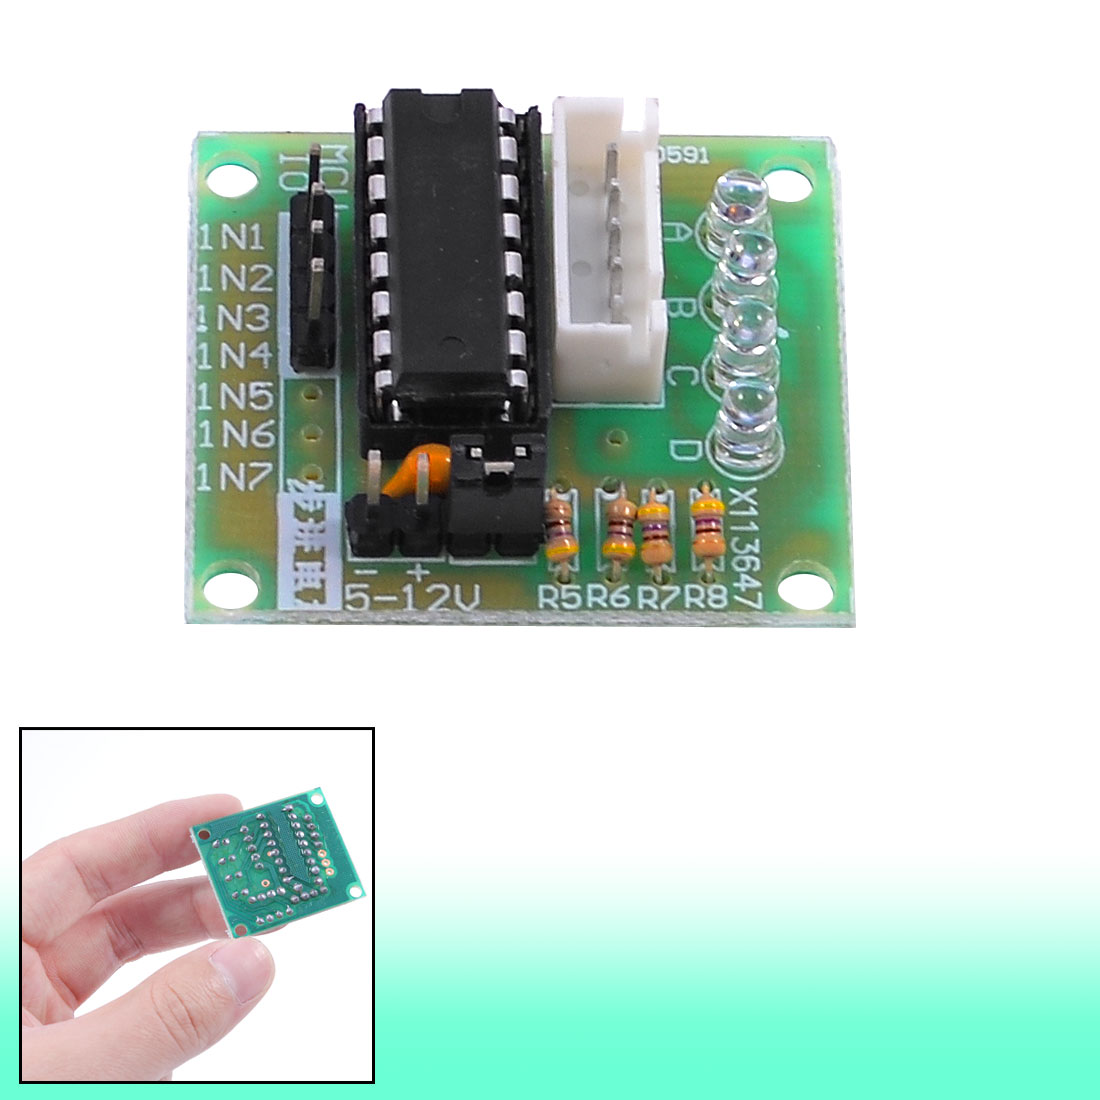 LED Indicator ULN2003 Driver Board for 5 Wire 4 Phase Stepper Motor